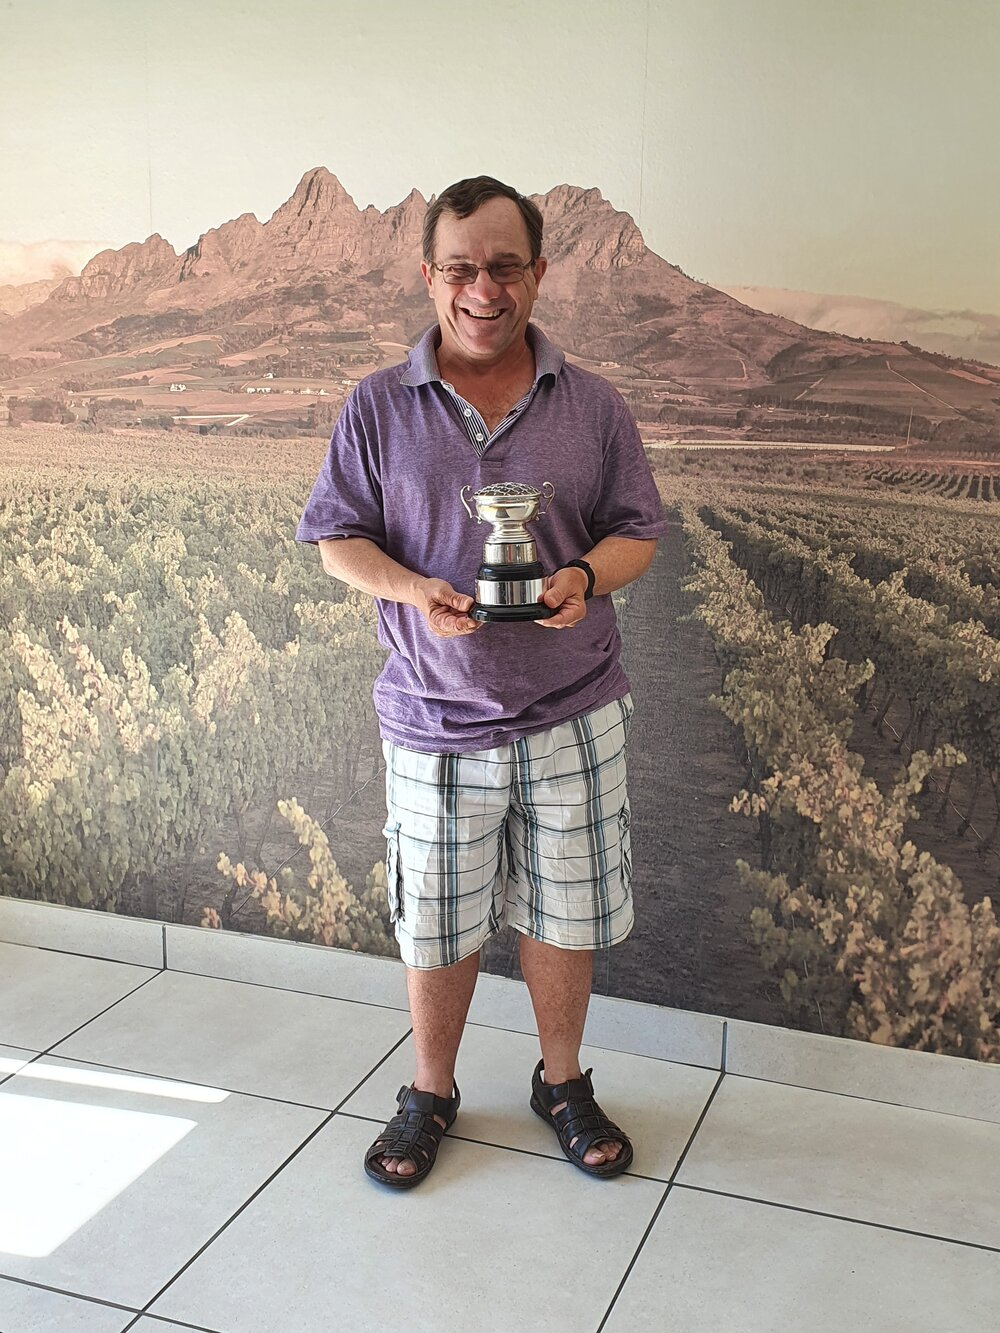 Congratulations Peter Johnson and Richard Prosser on your first place in the Handicap Doubles Western Cape Golf Croquet Championships!!